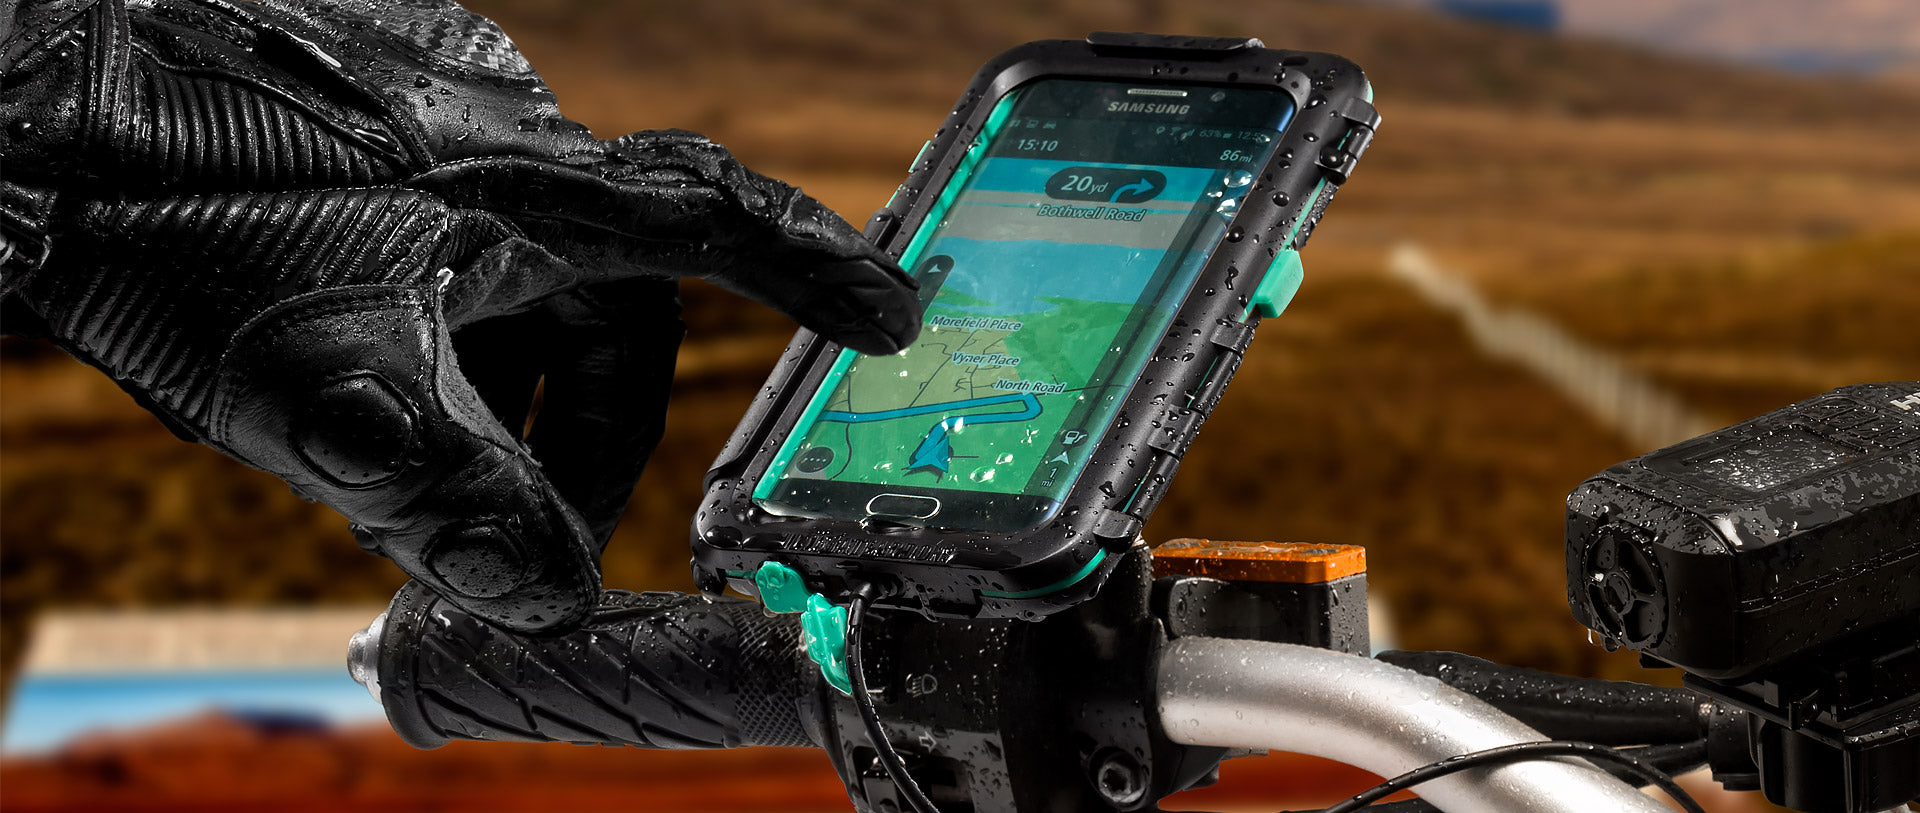 Galaxy S6 Tough Case mounted to motorcycle